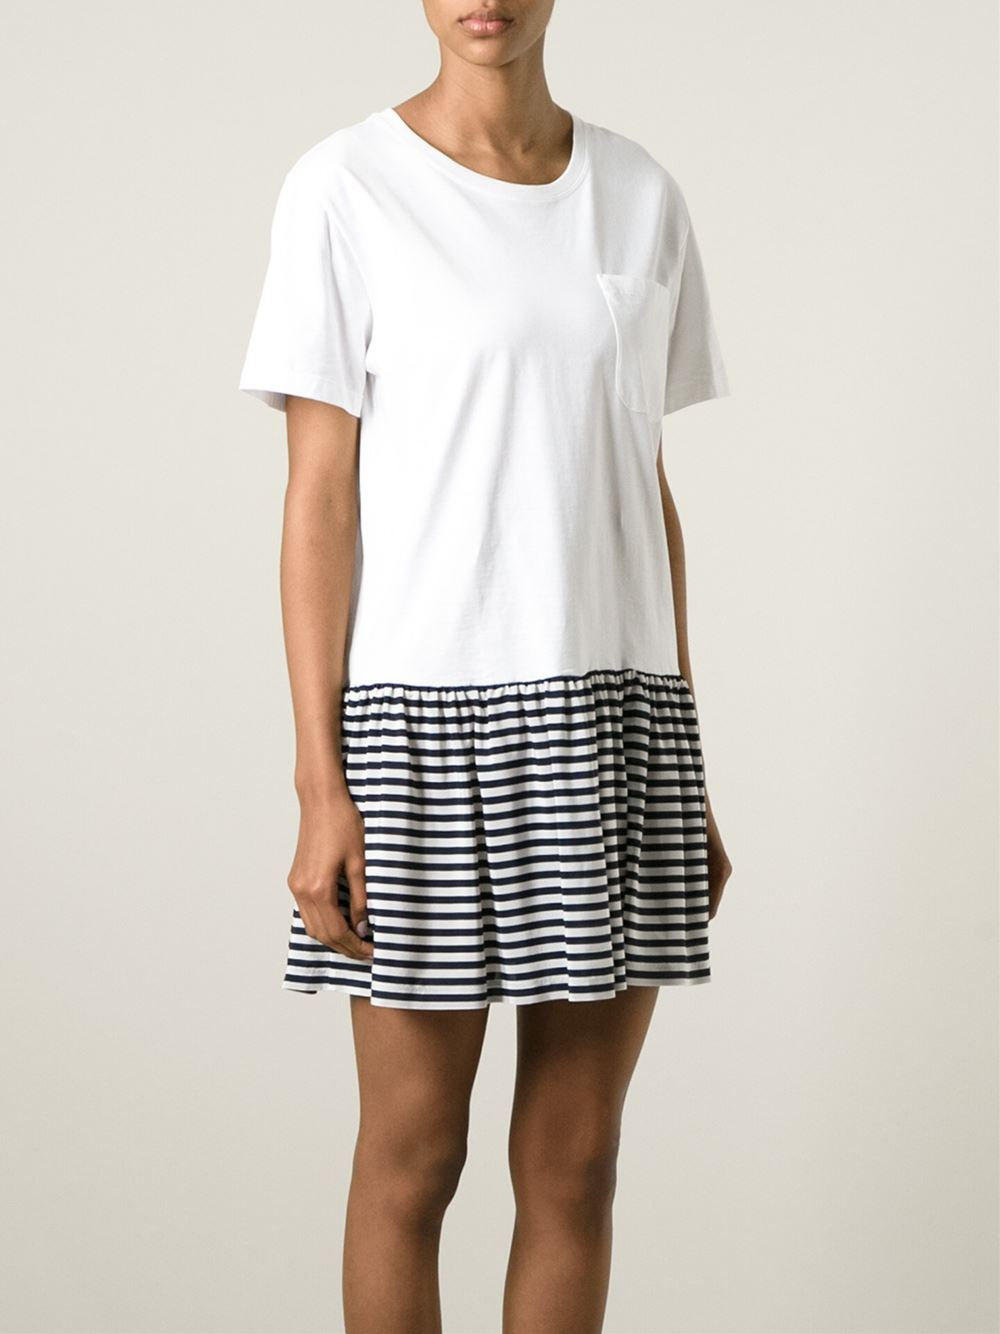 Lyst red valentino striped skirt cotton t shirt dress in for Dressy white t shirt